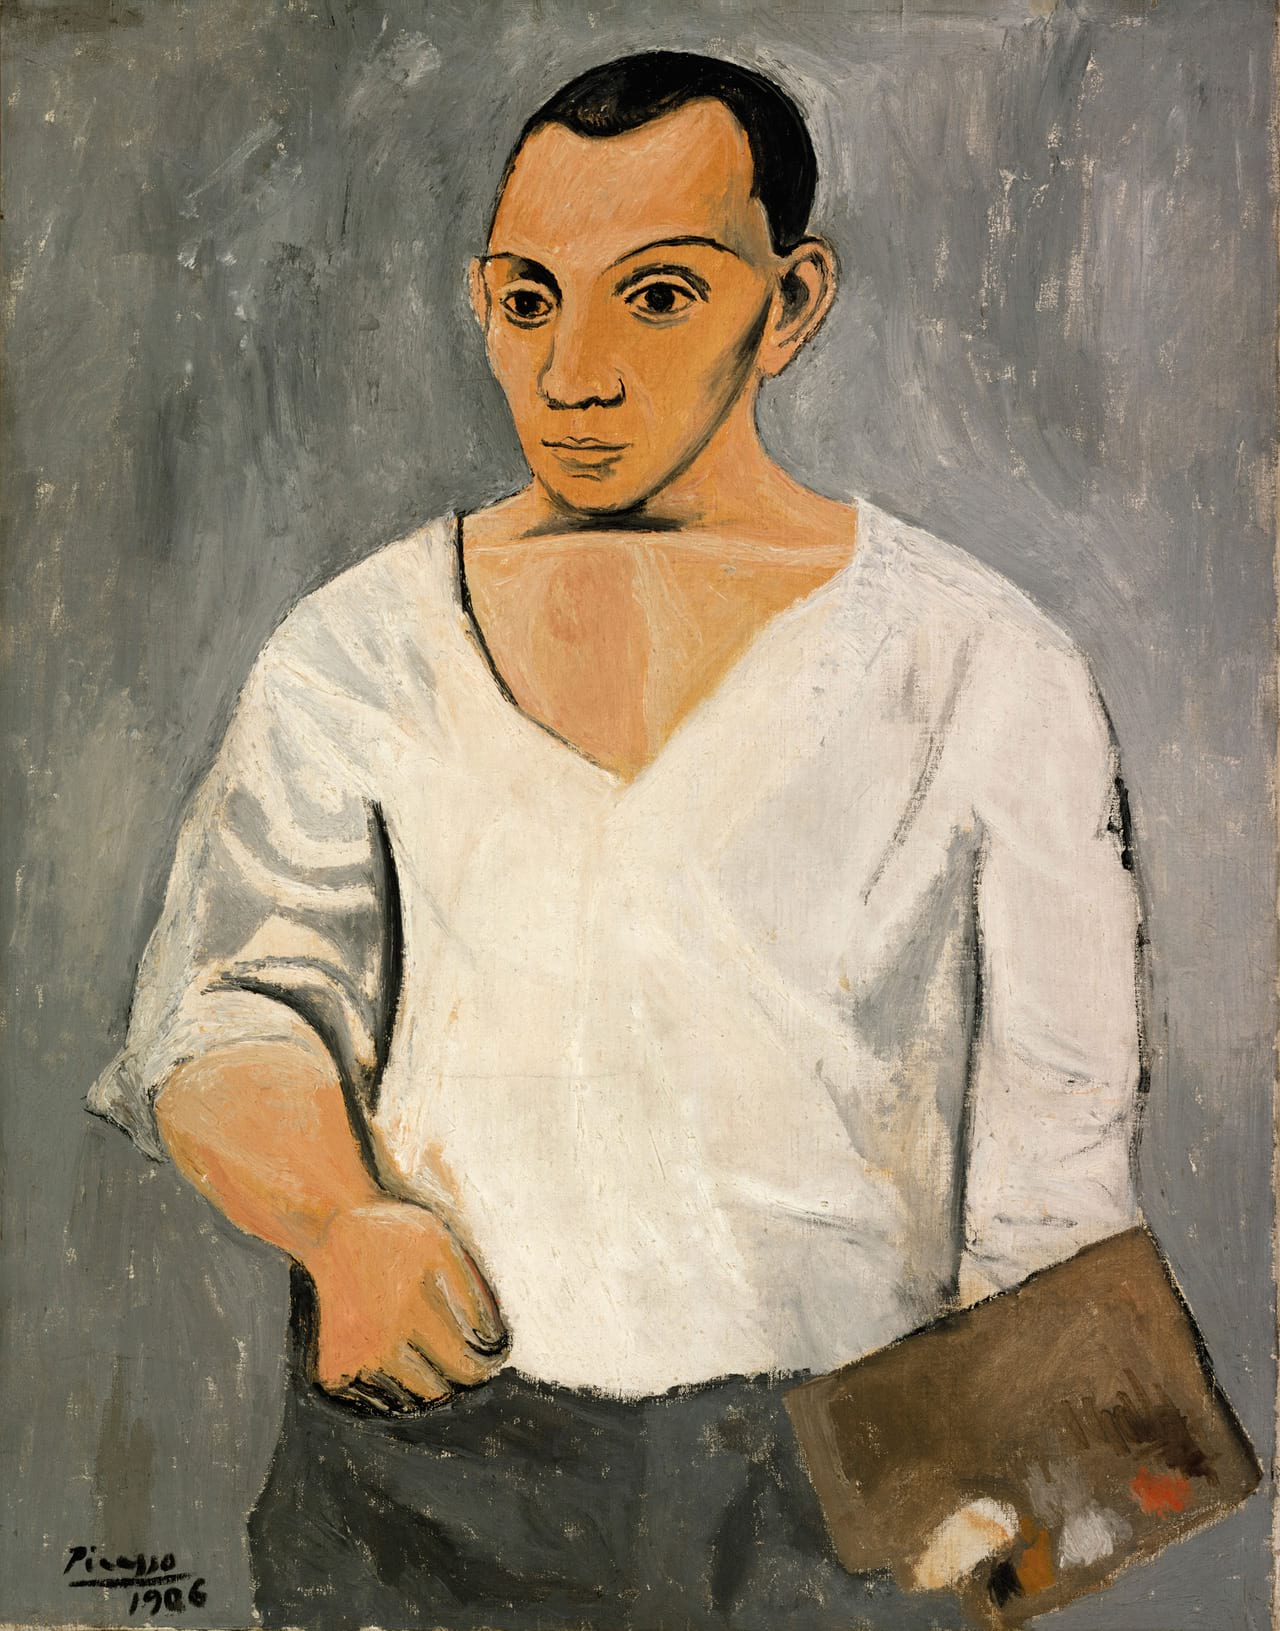 Pablo Picasso, Self-Portrait with Palette, 1906. © Succession Picasso/DACS, London